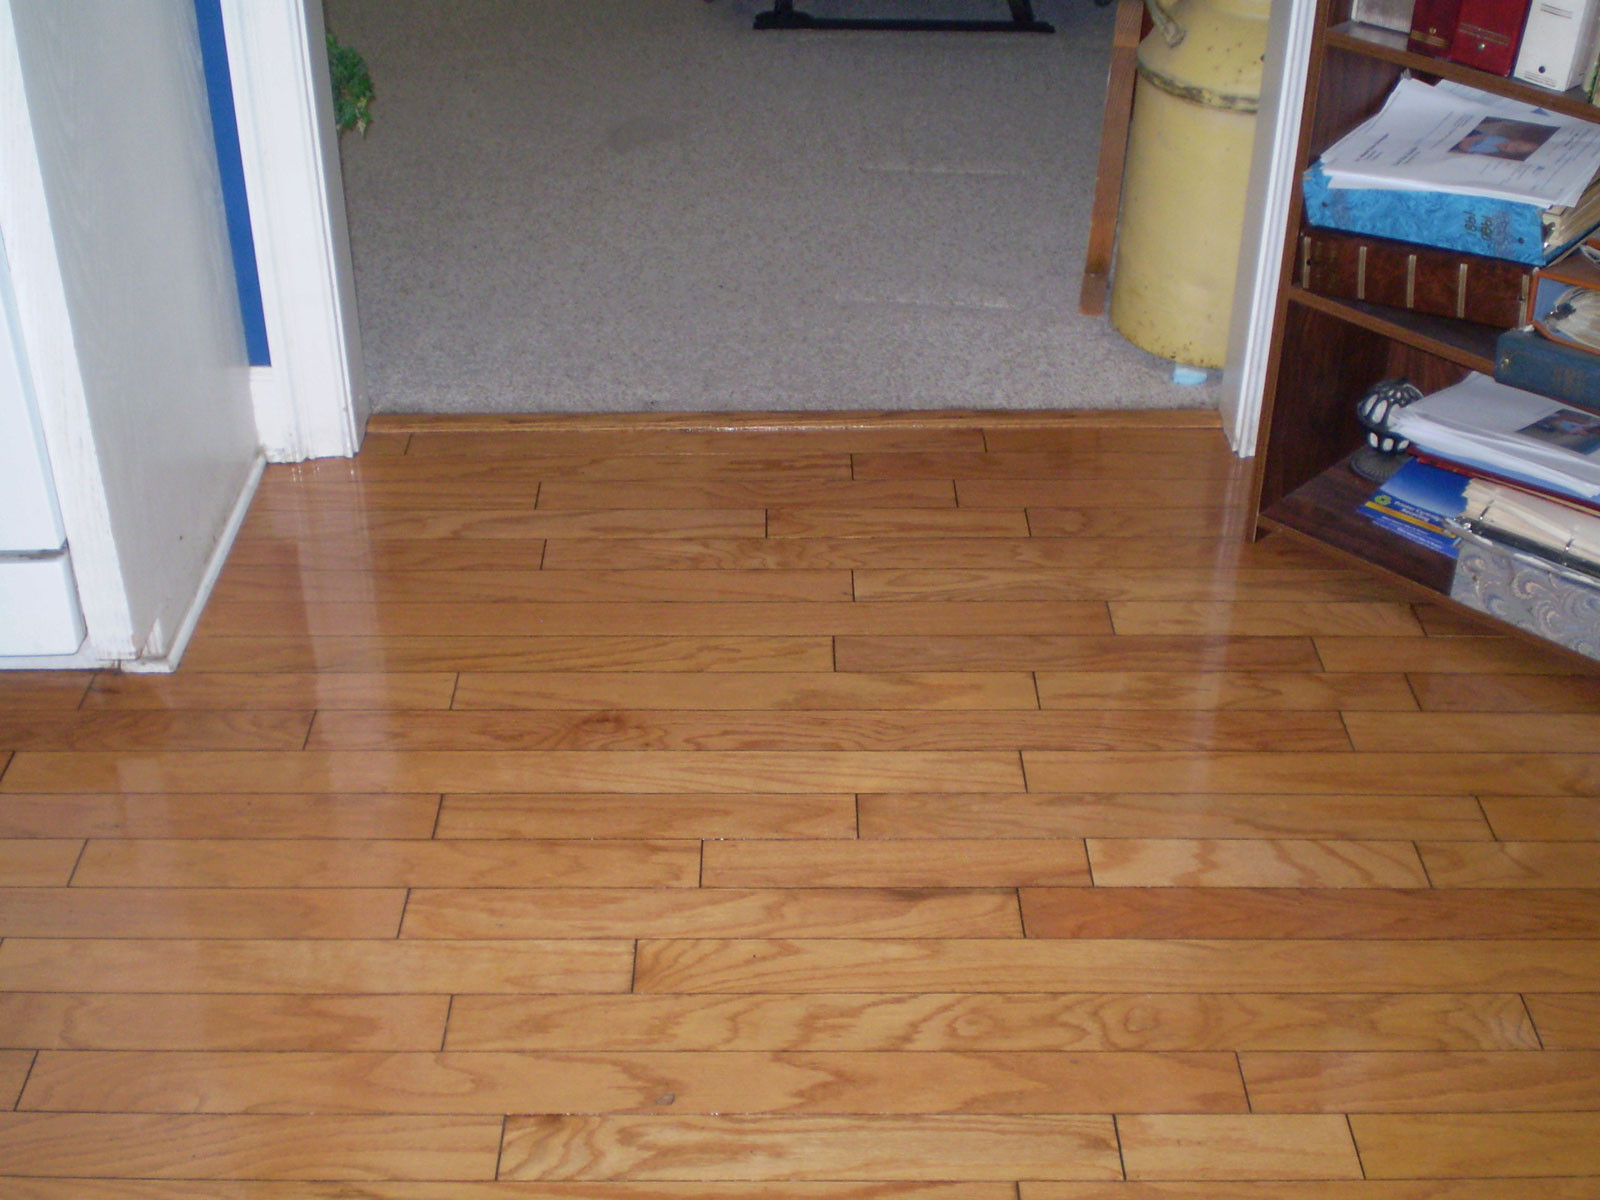 hardwood floor refinishing in louisville kentucky of 50 beautiful reglazing tile floors with reglazing tile floors lovely cost refinishing wood floors will refinishingod floors pet stains of 50 beautiful